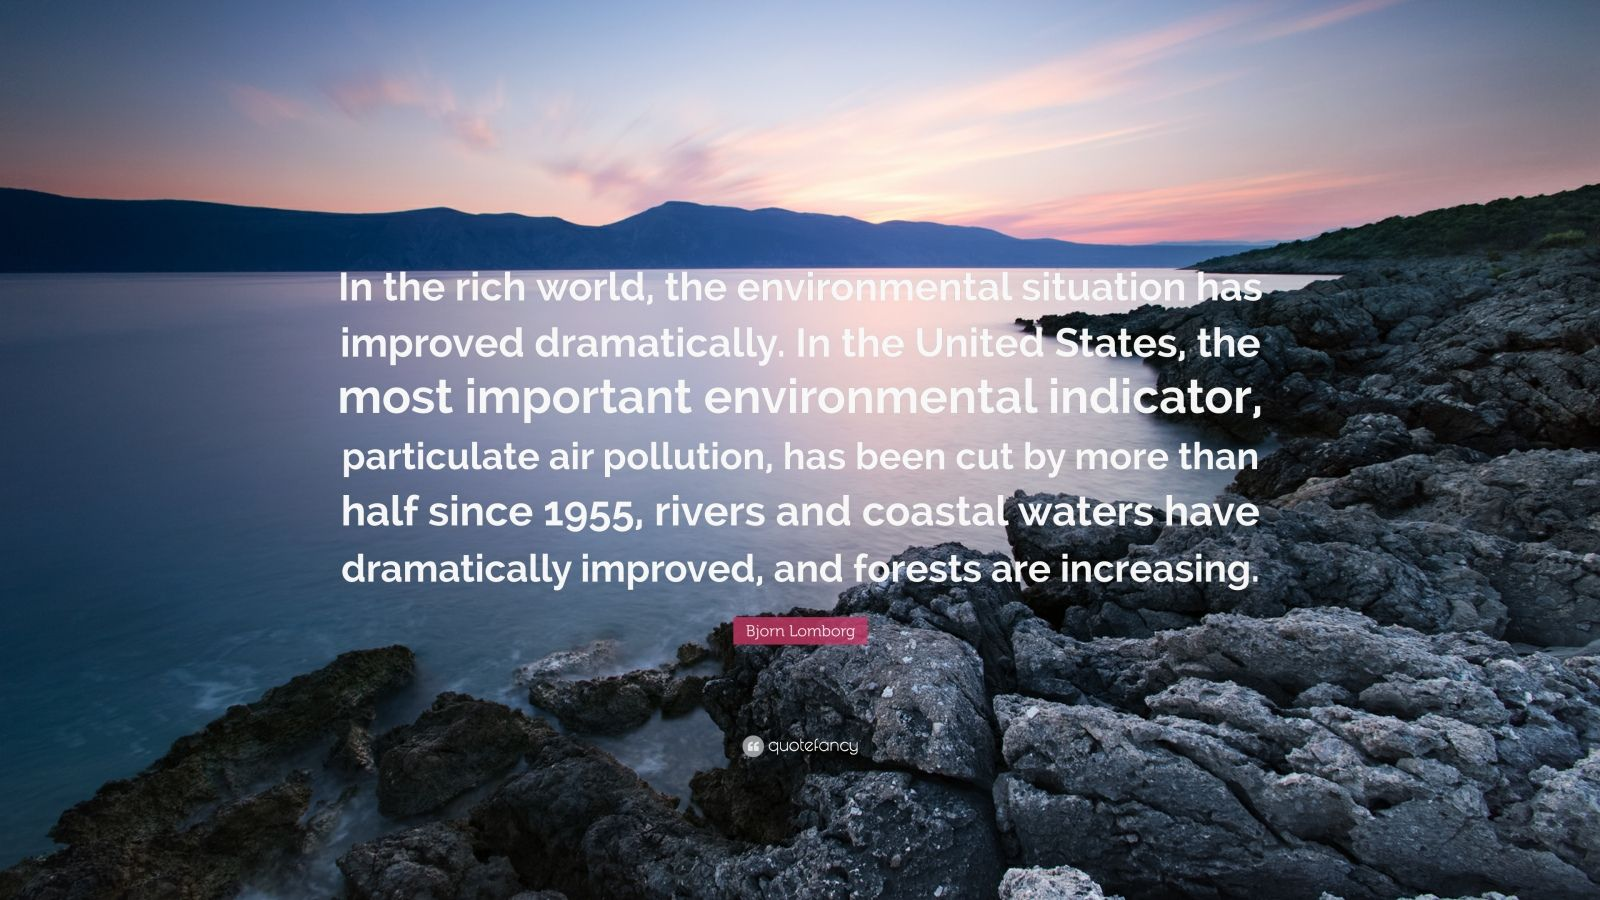 """Bjorn Lomborg Quote: """"In the rich world, the environmental situation has improved dramatically. In the United States, the most important environmental indicator, particulate air pollution, has been cut by more than half since 1955, rivers and coastal waters have dramatically improved, and forests are increasing."""""""